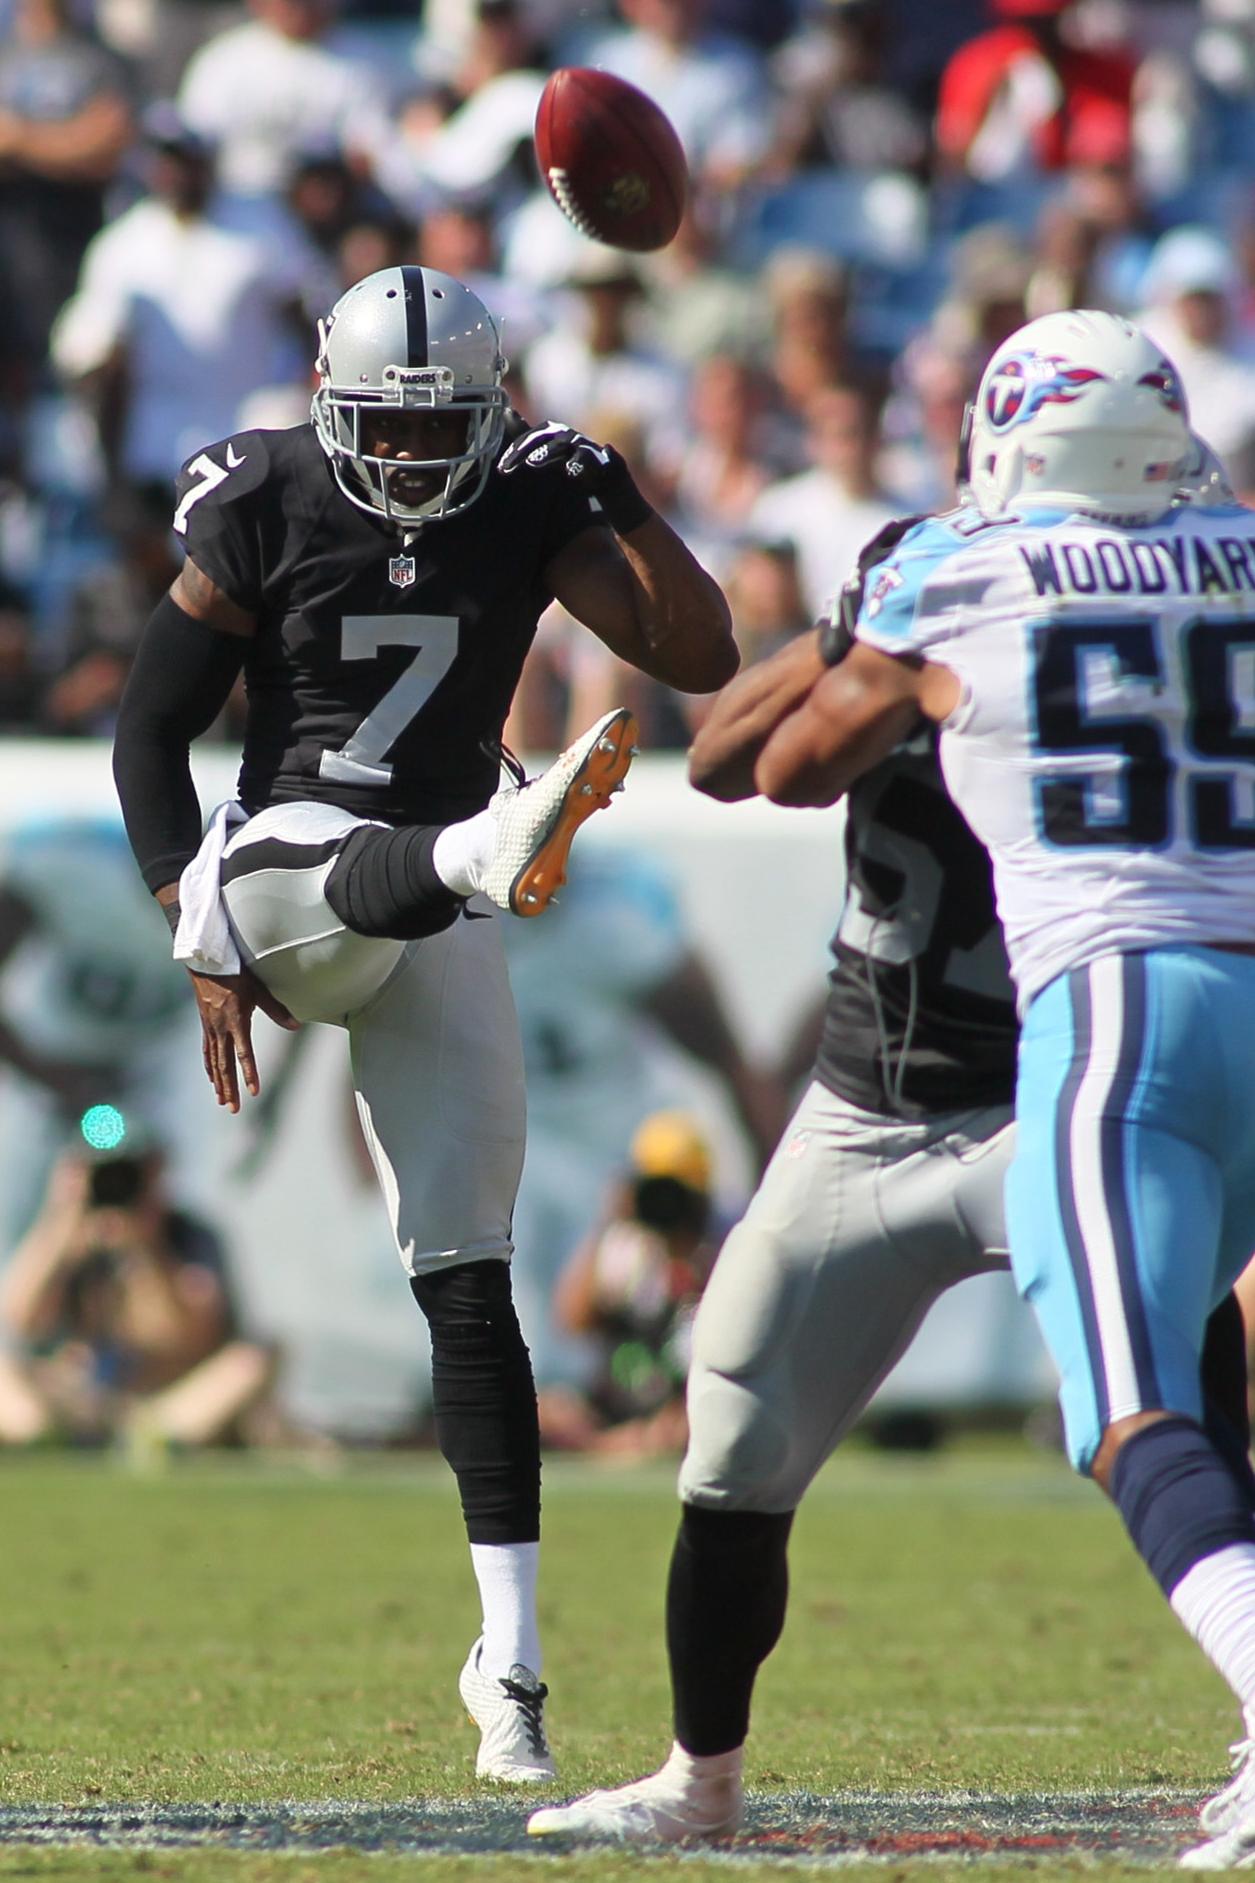 September 25 2016: Oakland Raiders Punter Marquette King (7) during game action. The Tennessee Titans were defeated by the Oakland Raiders 17-10 at LP Nissan Stadium in Nashville, Tn.